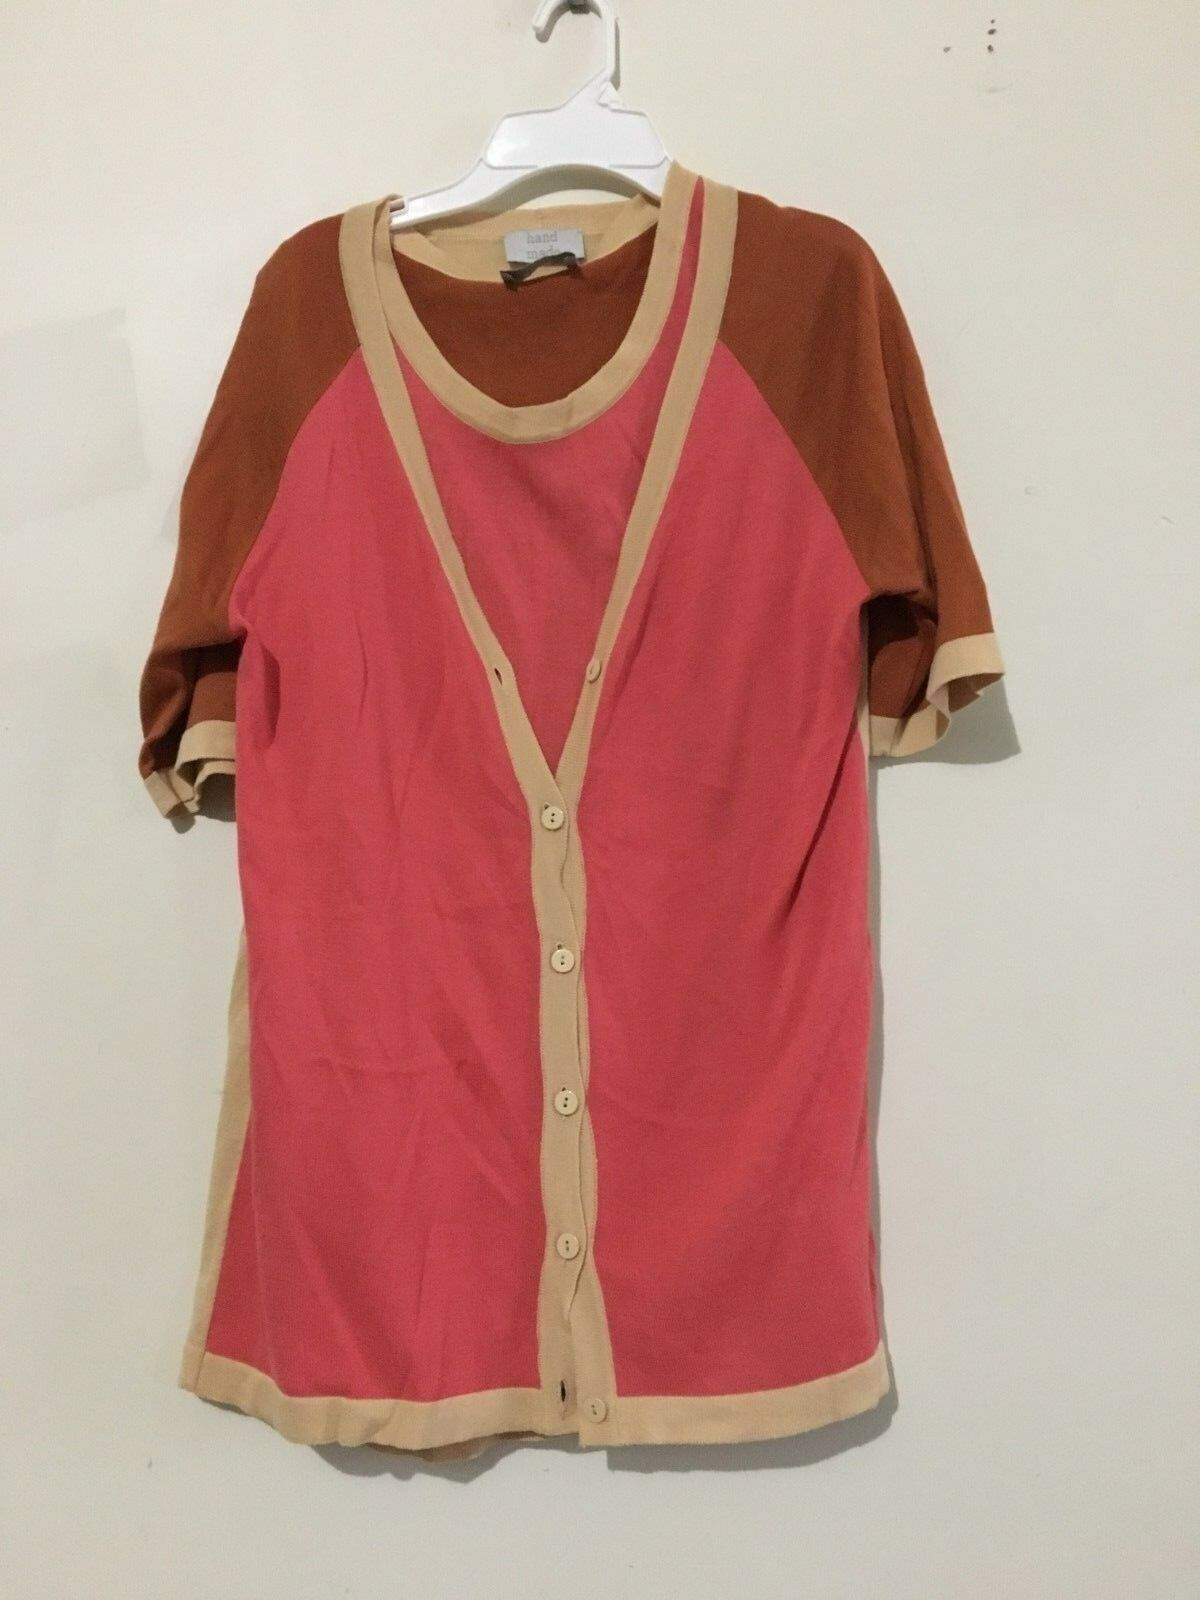 Hand Made Pink Tan Caramel 2 Piece Cardigan Camisole Sweater Women Size 44